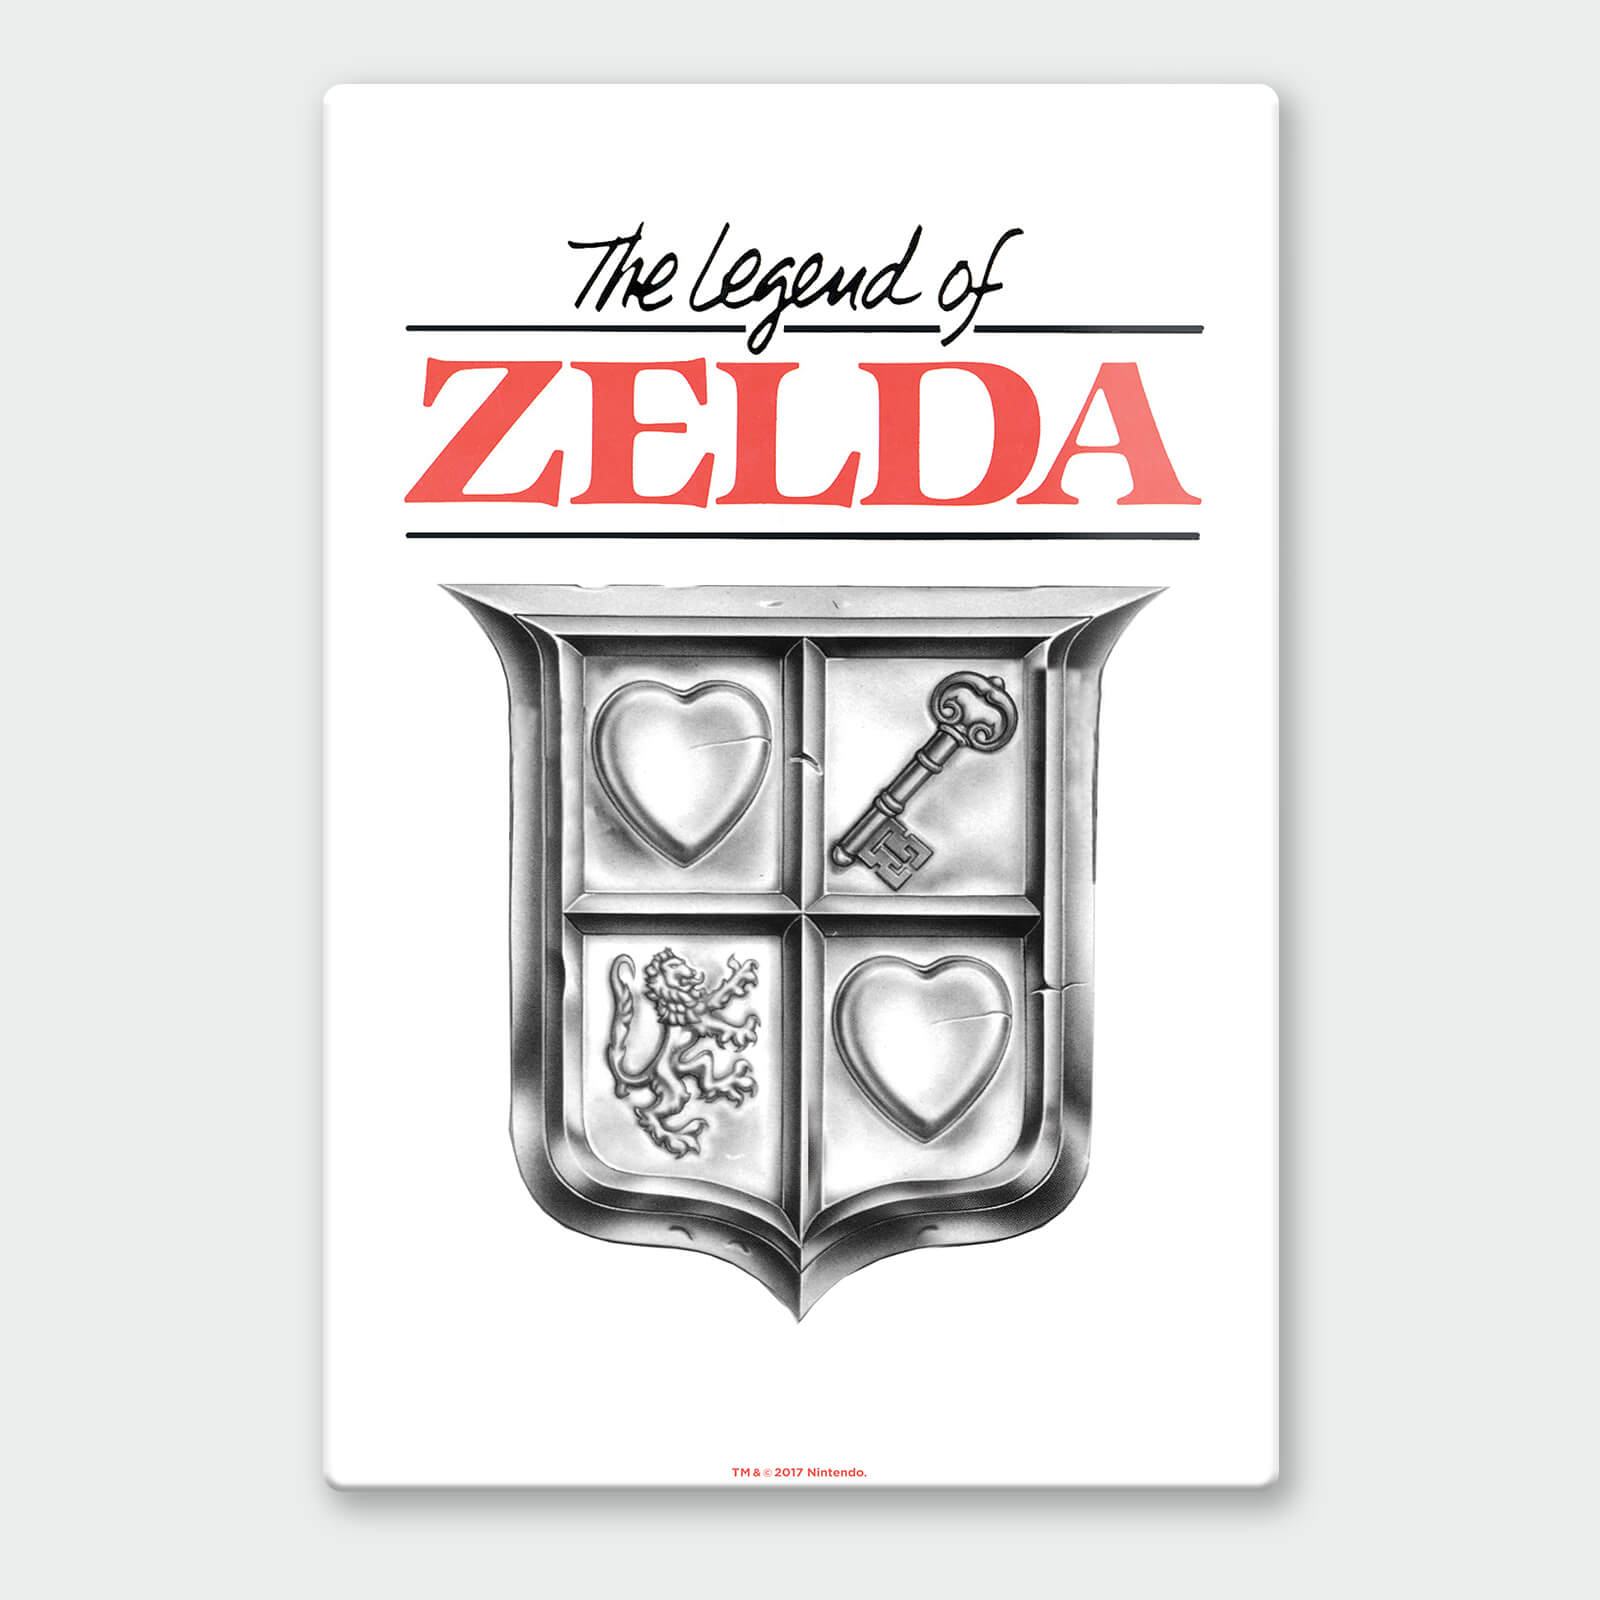 Nintendo Legend of Zelda Chromalux High Gloss Metal Poster